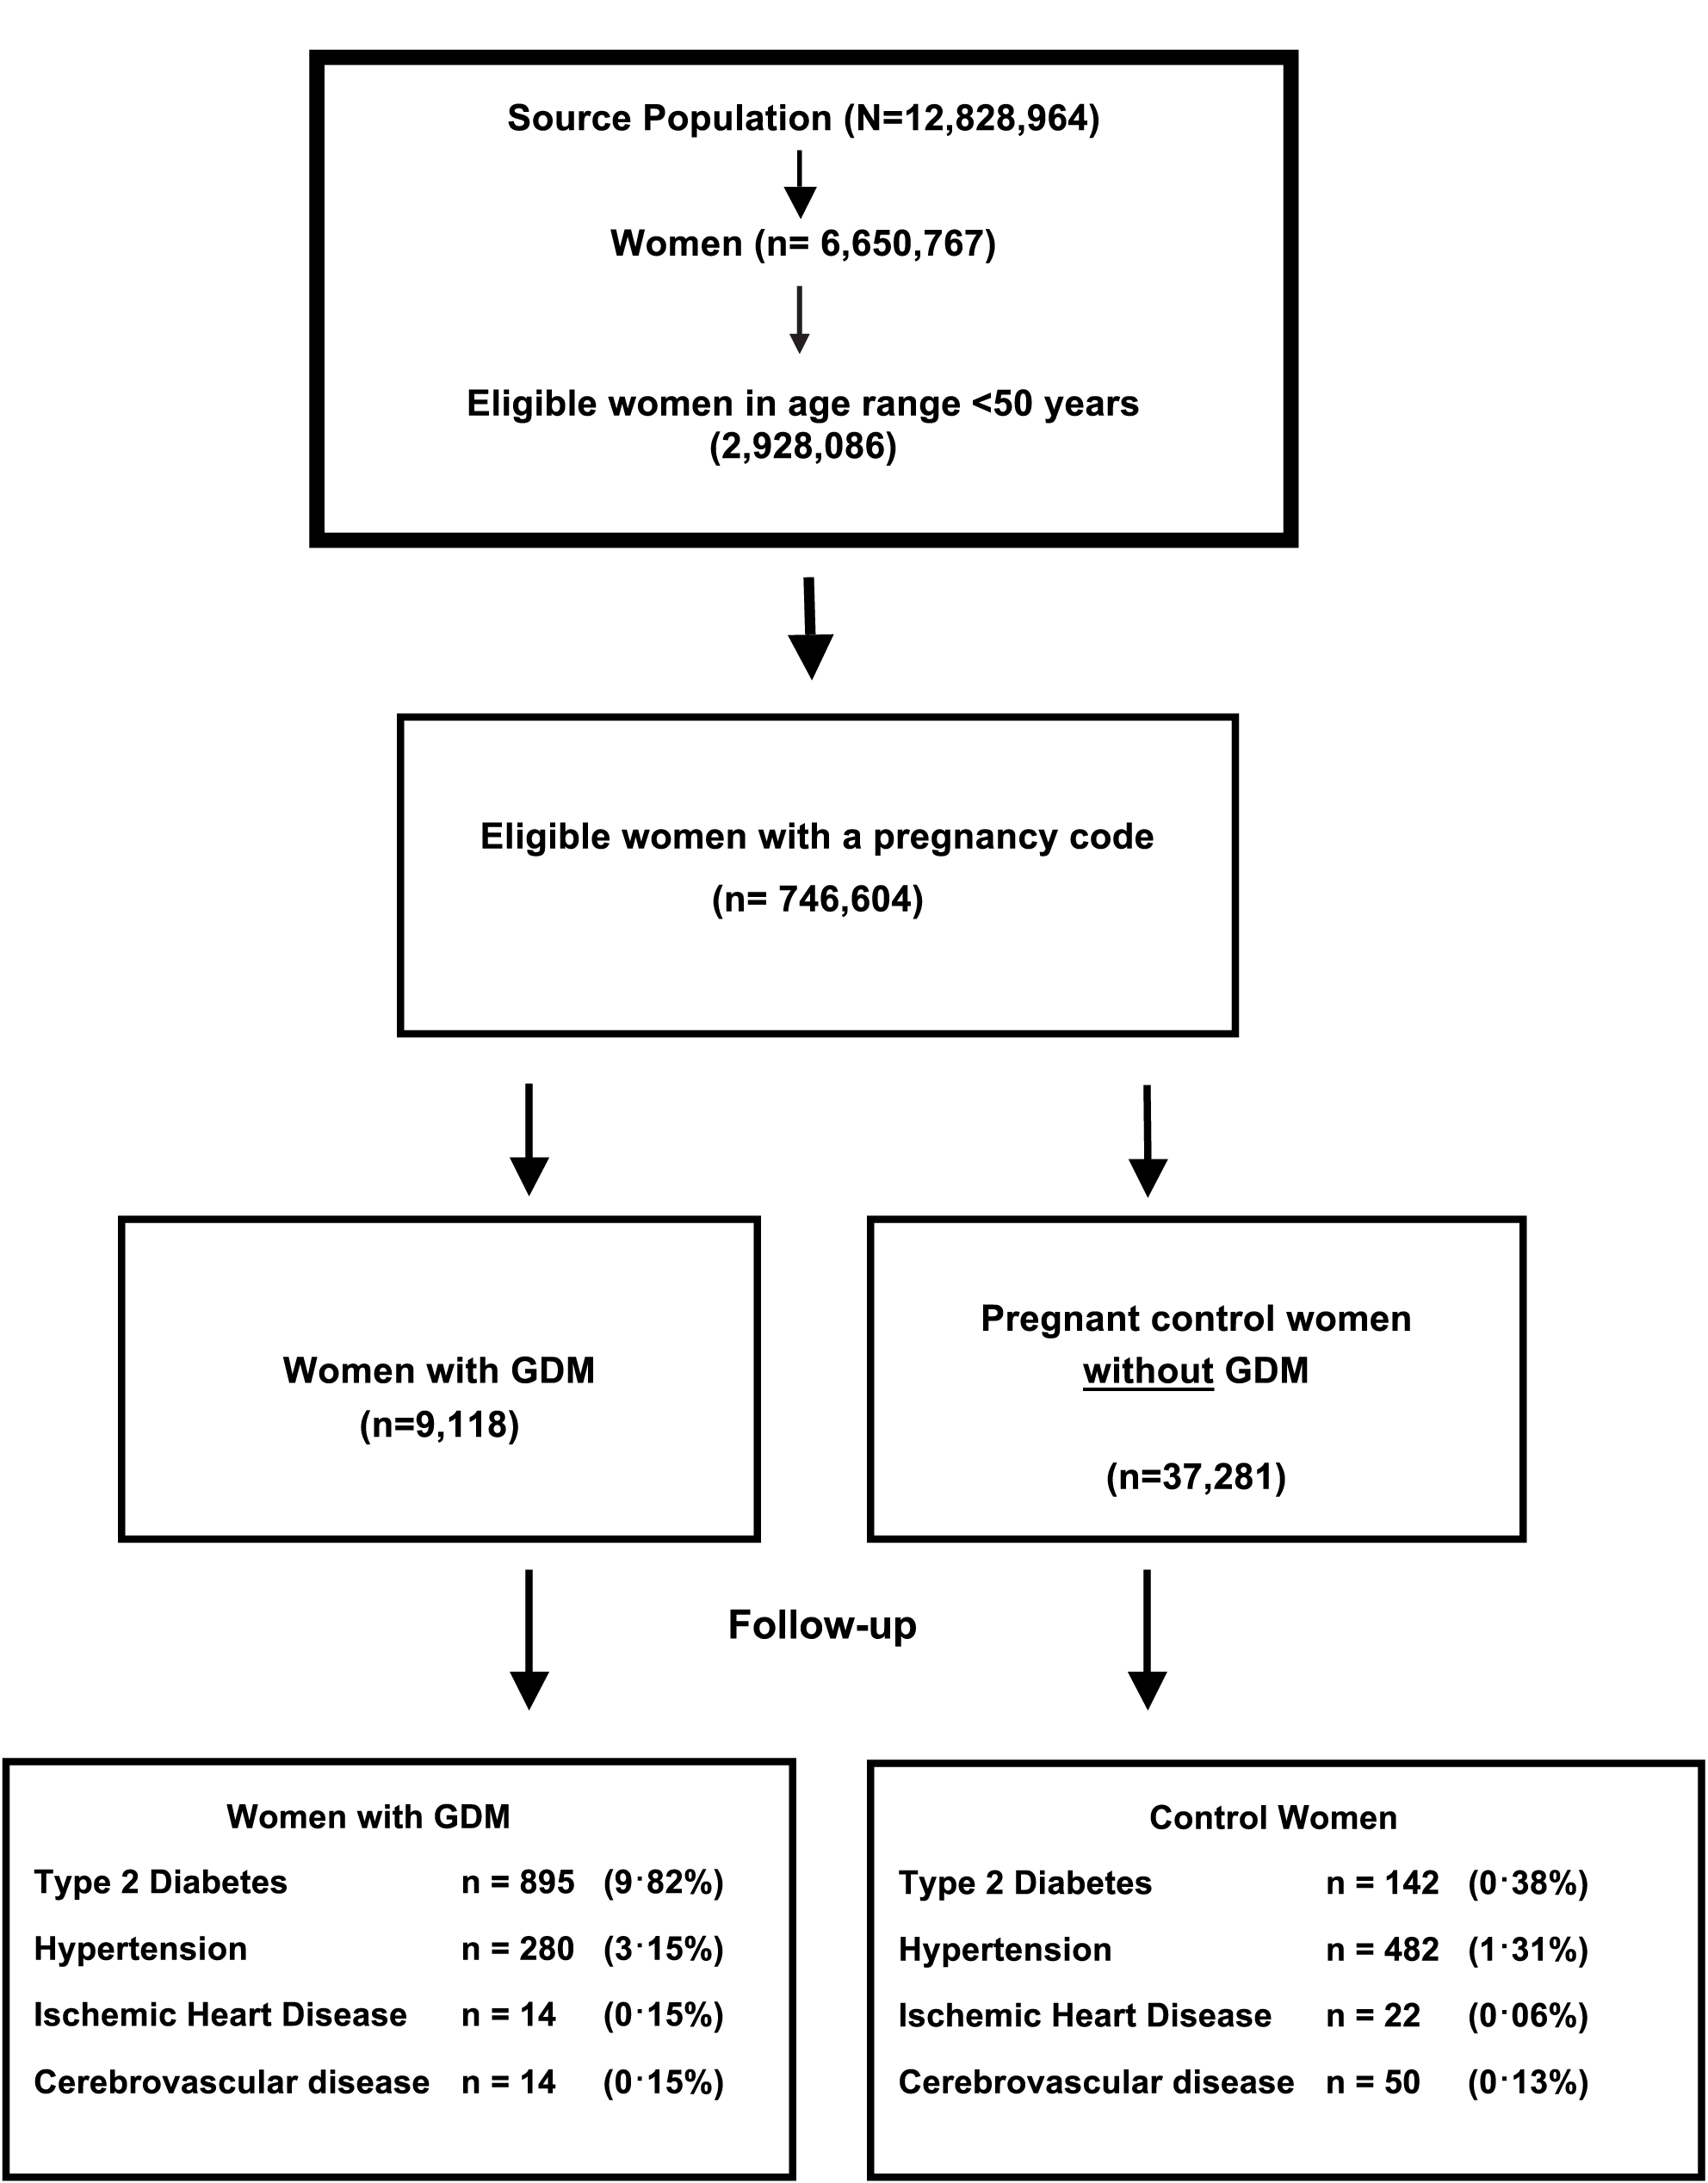 Flow diagram of the source population, women with gestation diabetes mellitus (GDM), and matched controls, including the proportion of women followed up in each group.